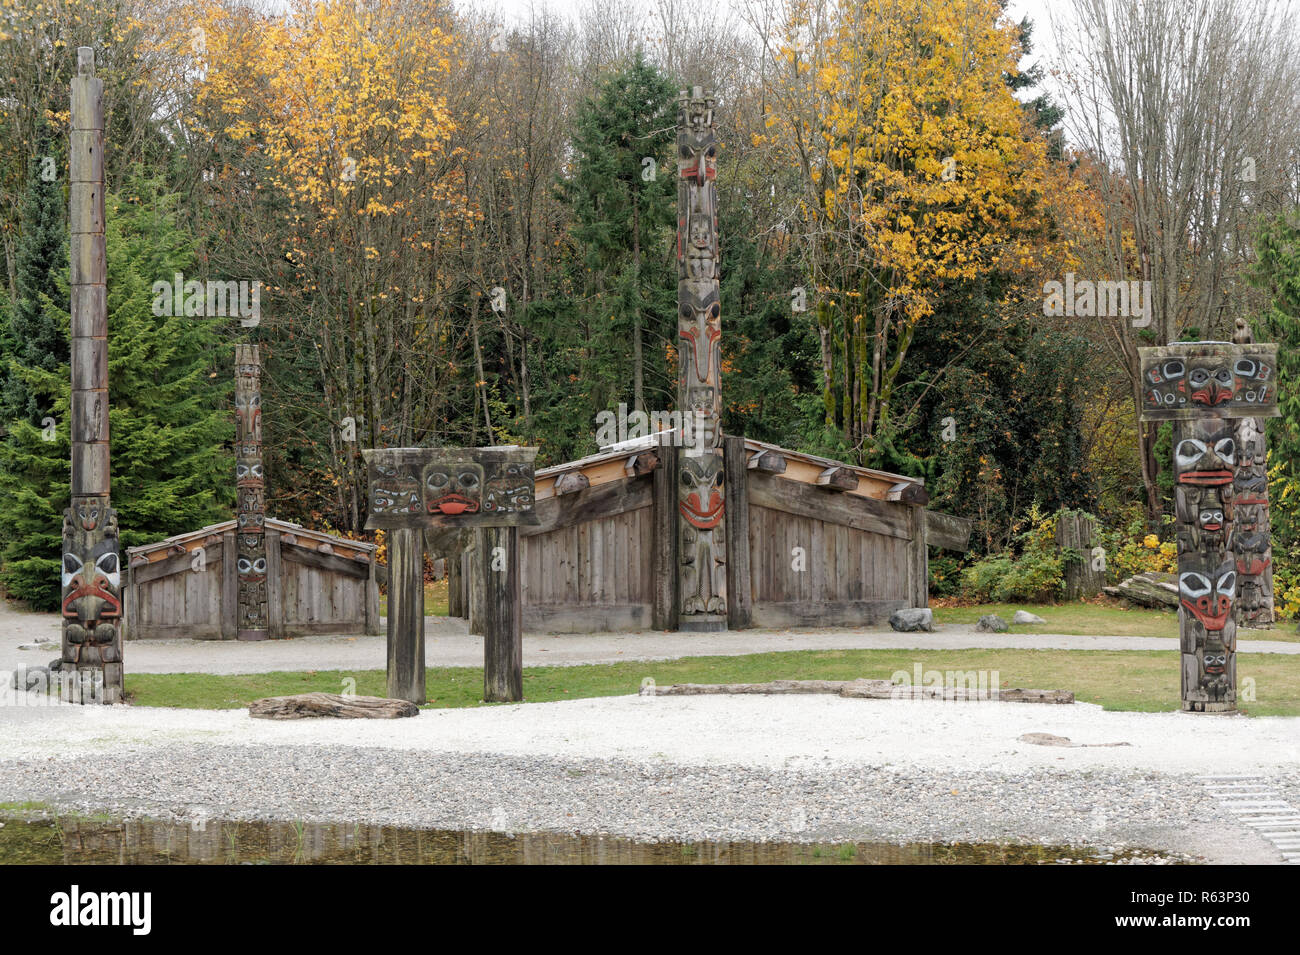 Haida village on the grounds of the Museum of Anthropology MOA, University of British Columbia, Vancouver, BC, Canada - Stock Image